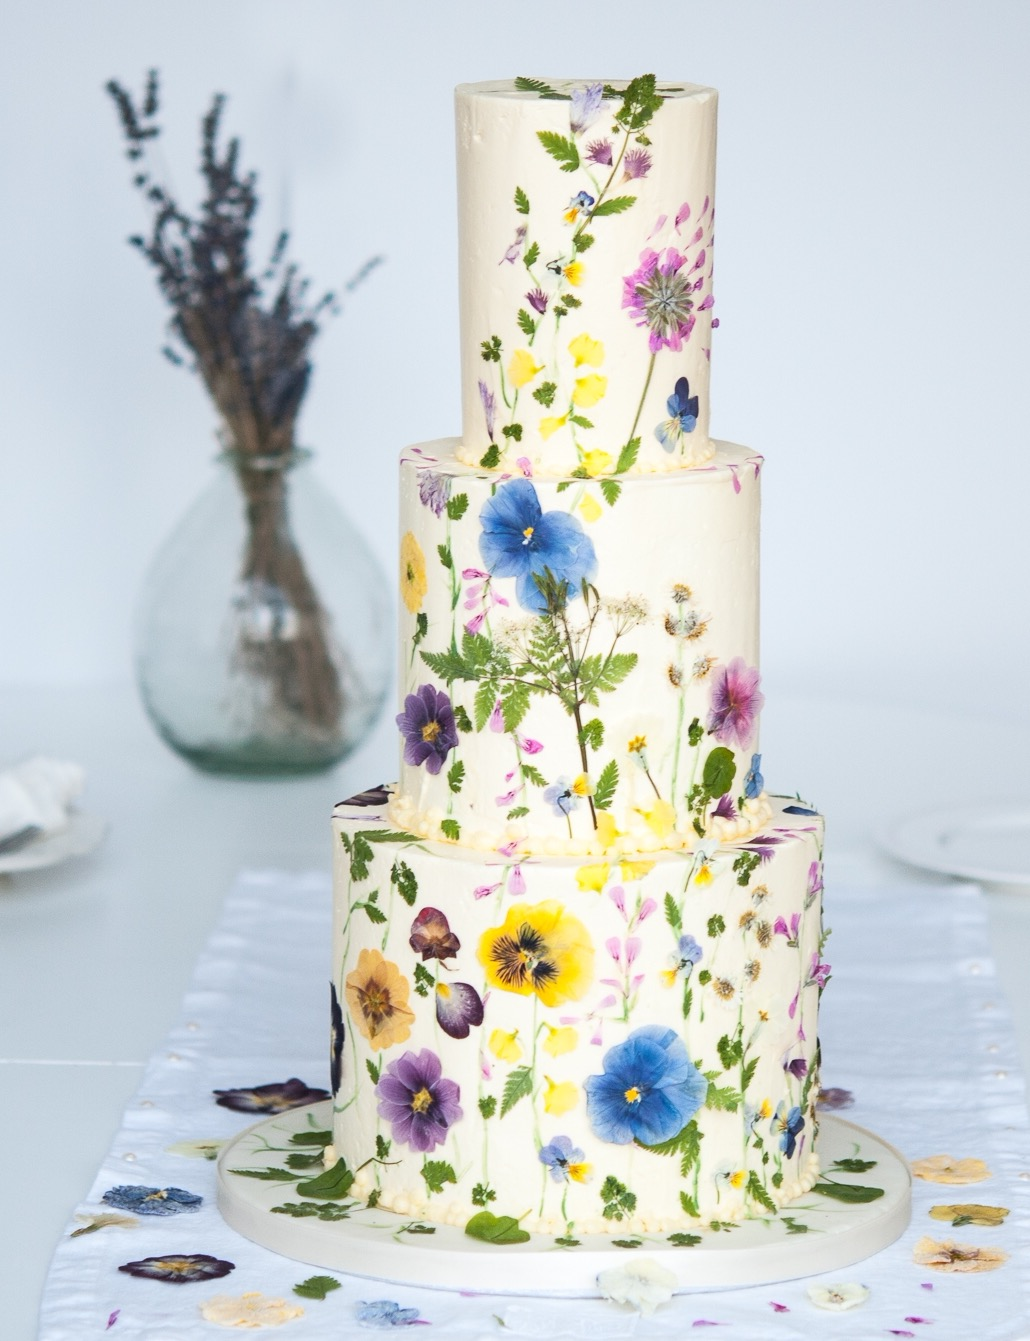 Three tier white wedding cake decorated with many colorful pressed flat fresh edible flowers.